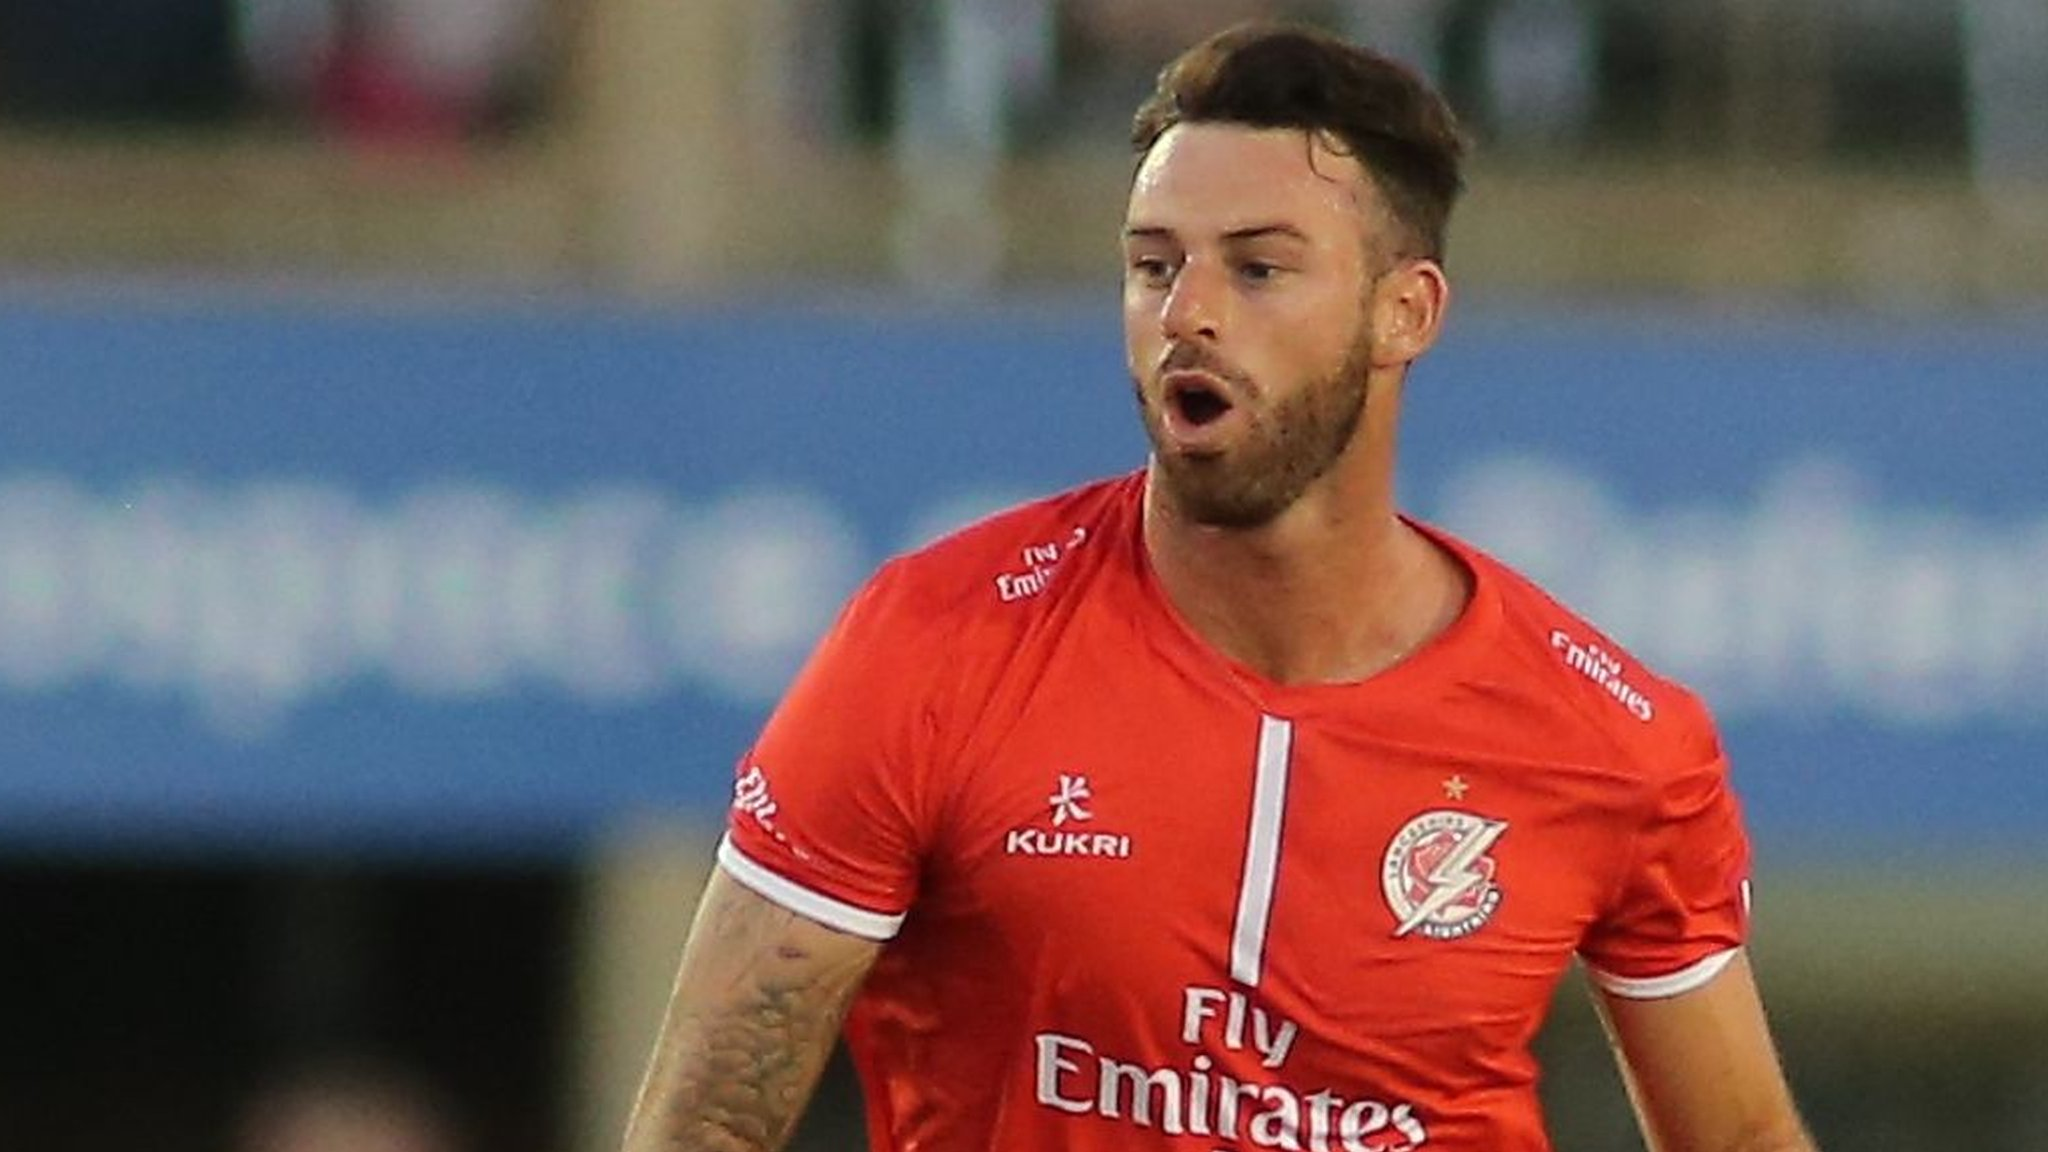 Jordan Clark: Lancashire all-rounder to join Surrey next season